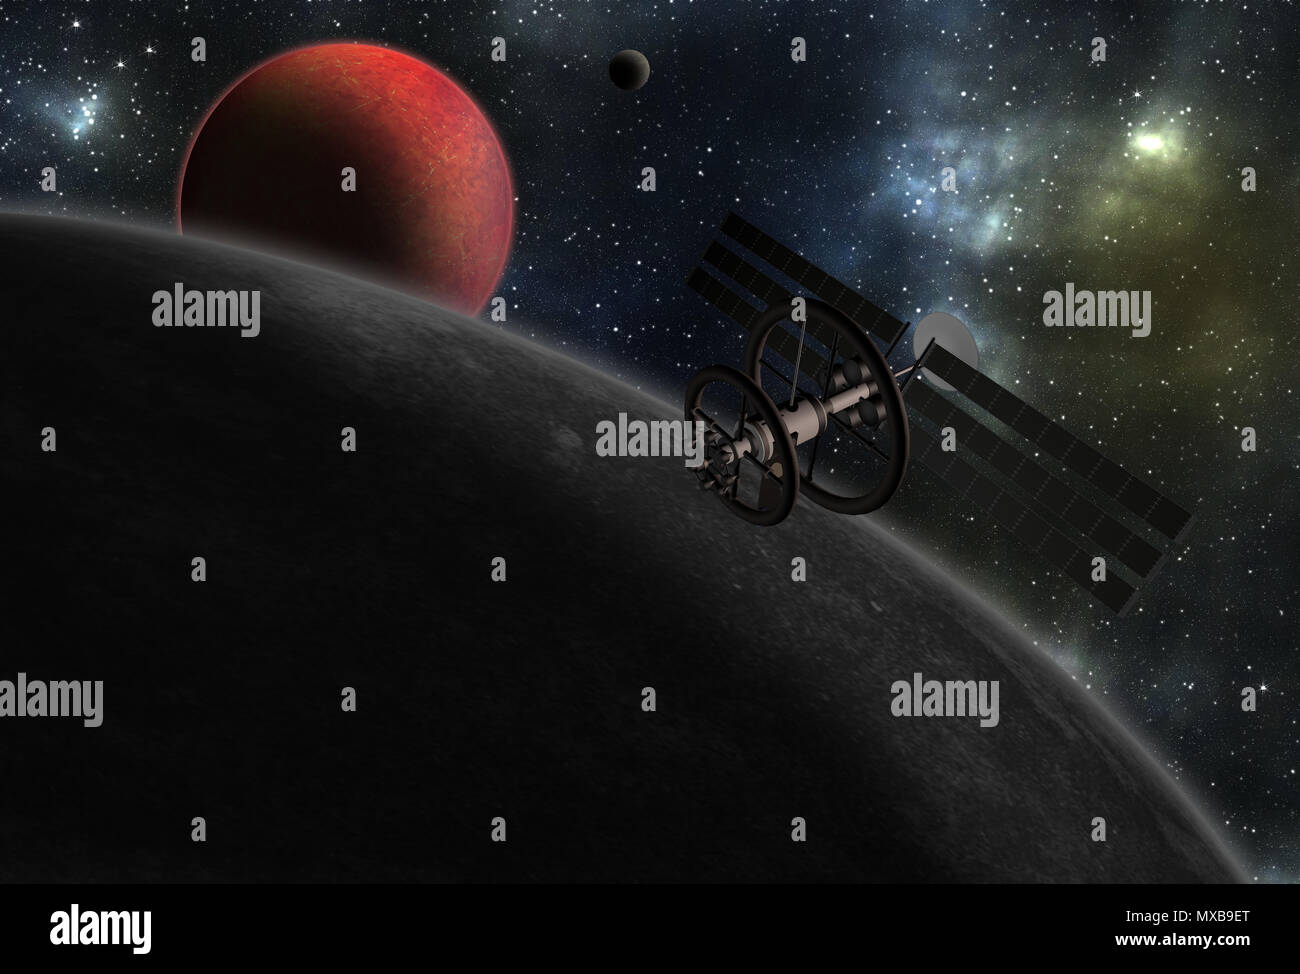 Spacecraft to vibrant outer space with stars, nebula and planets. - Stock Image